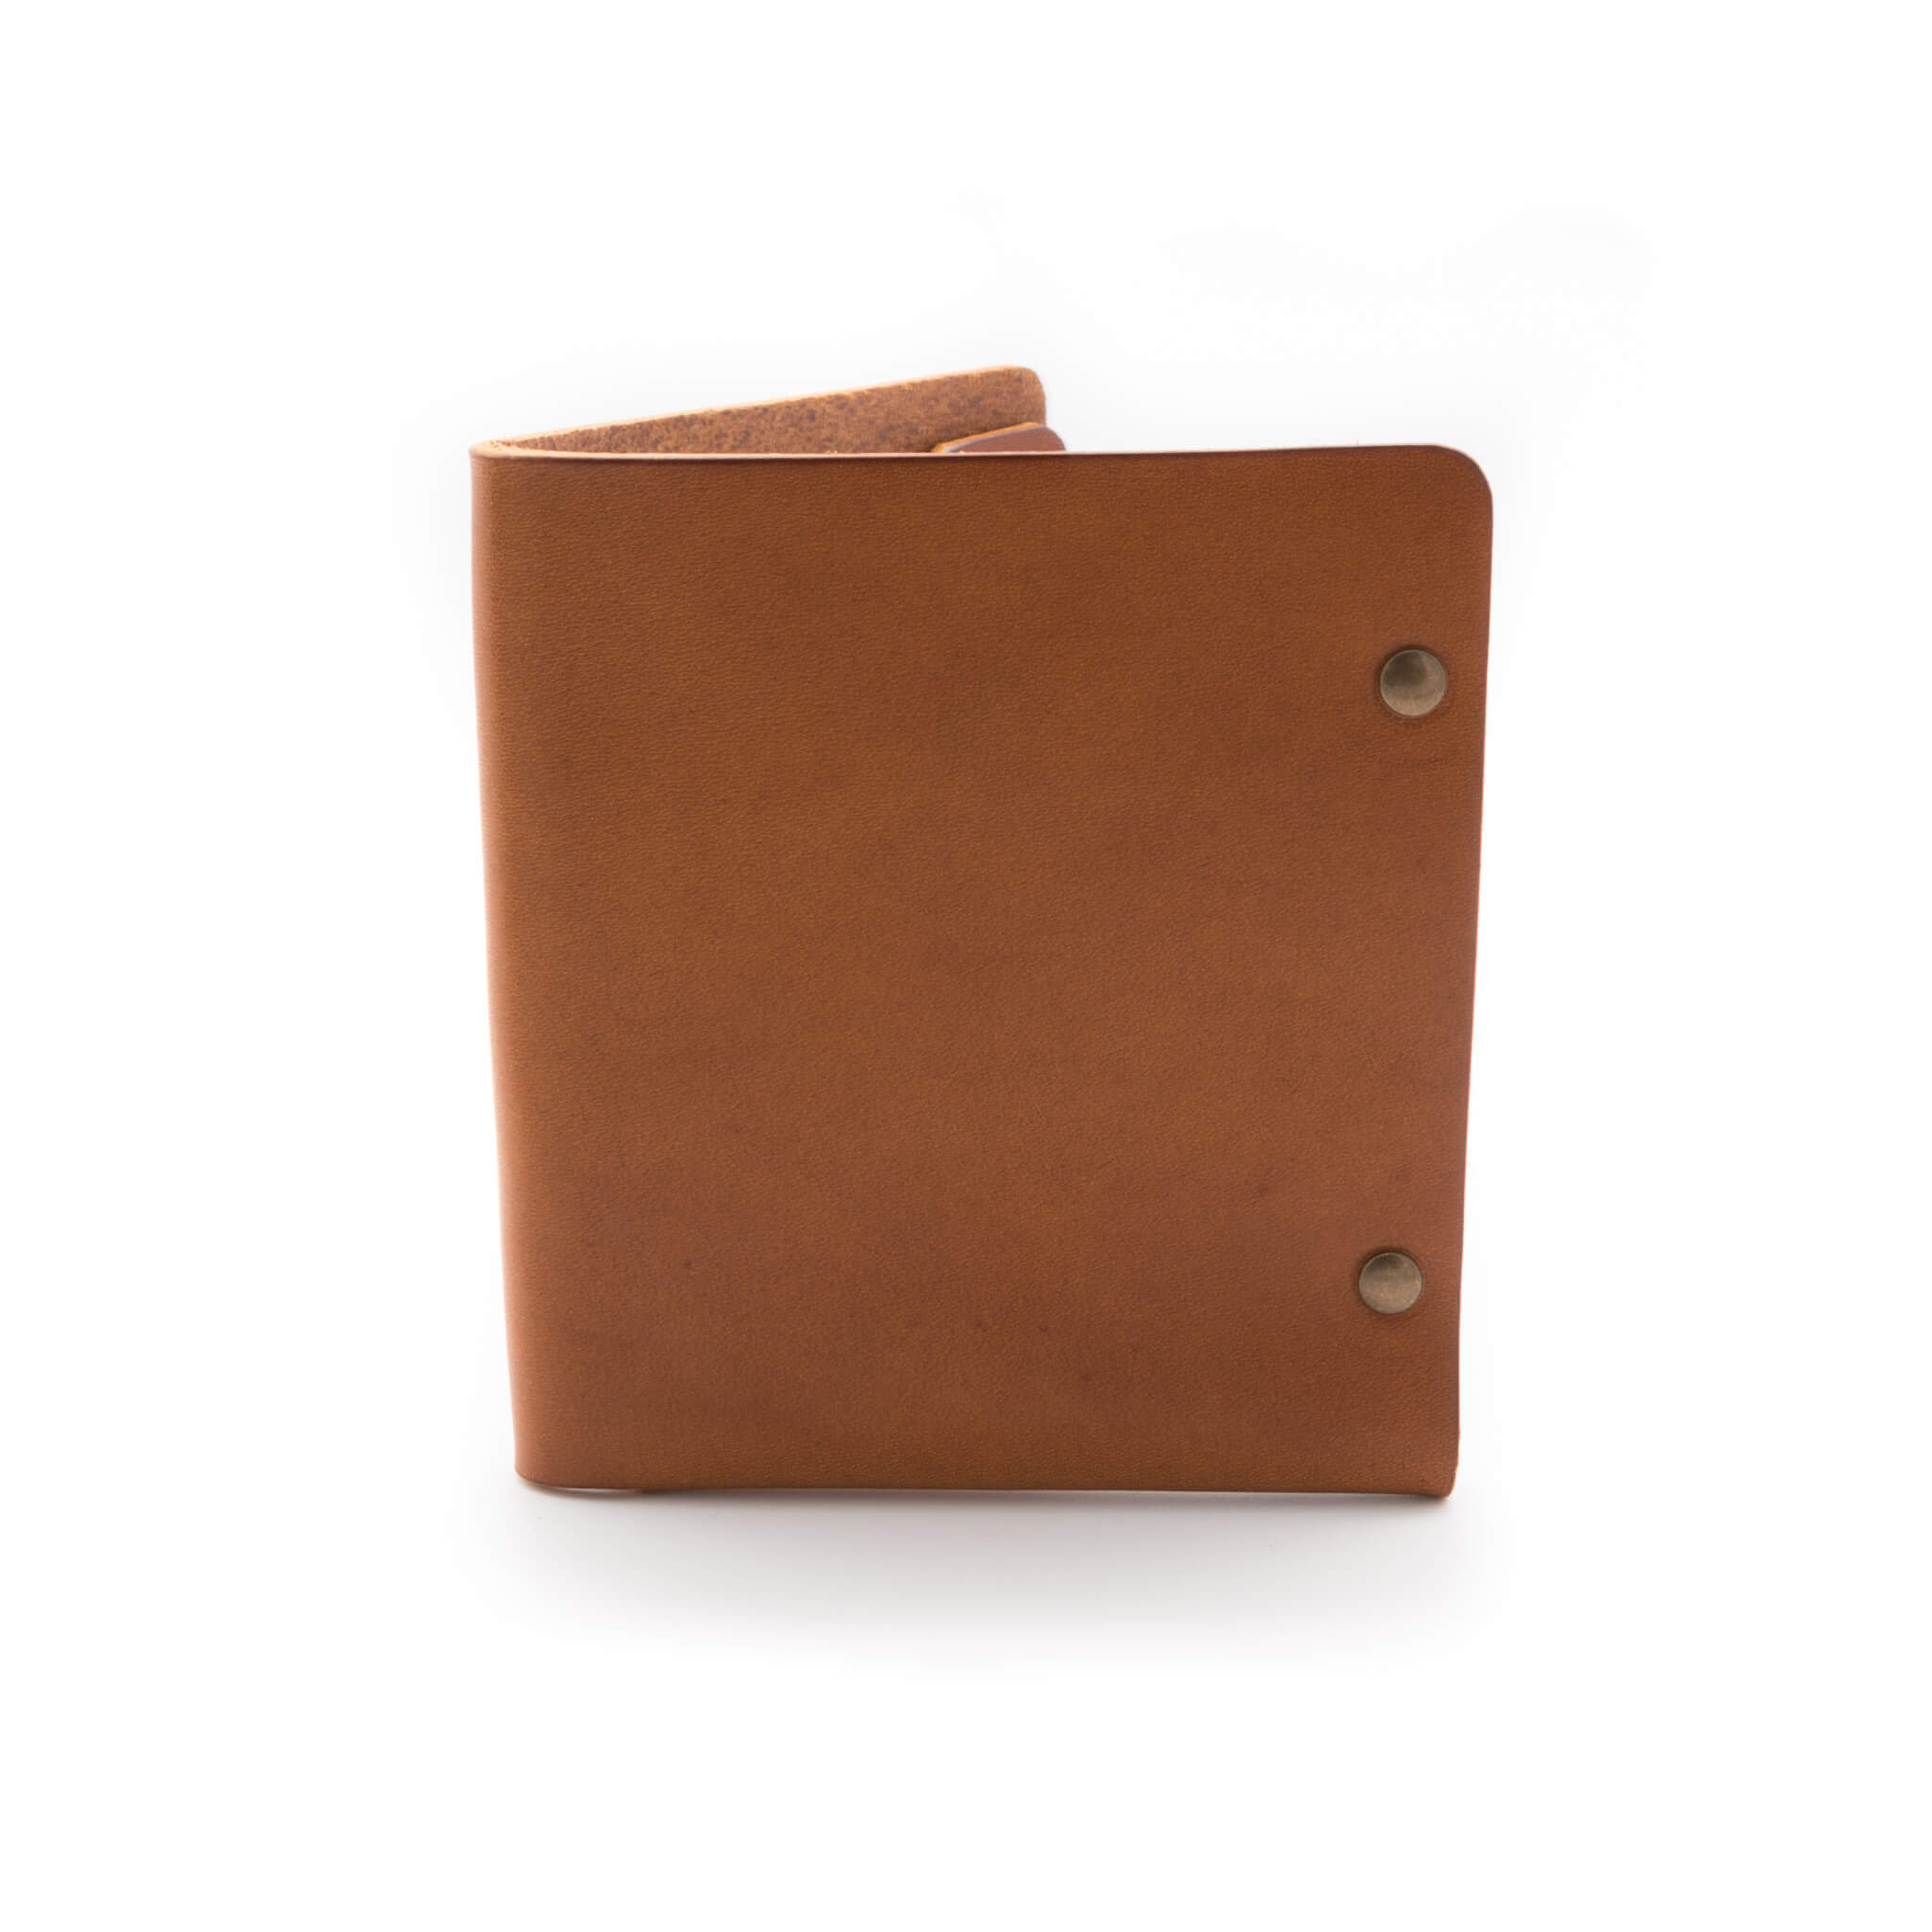 Tan colour leather wallet